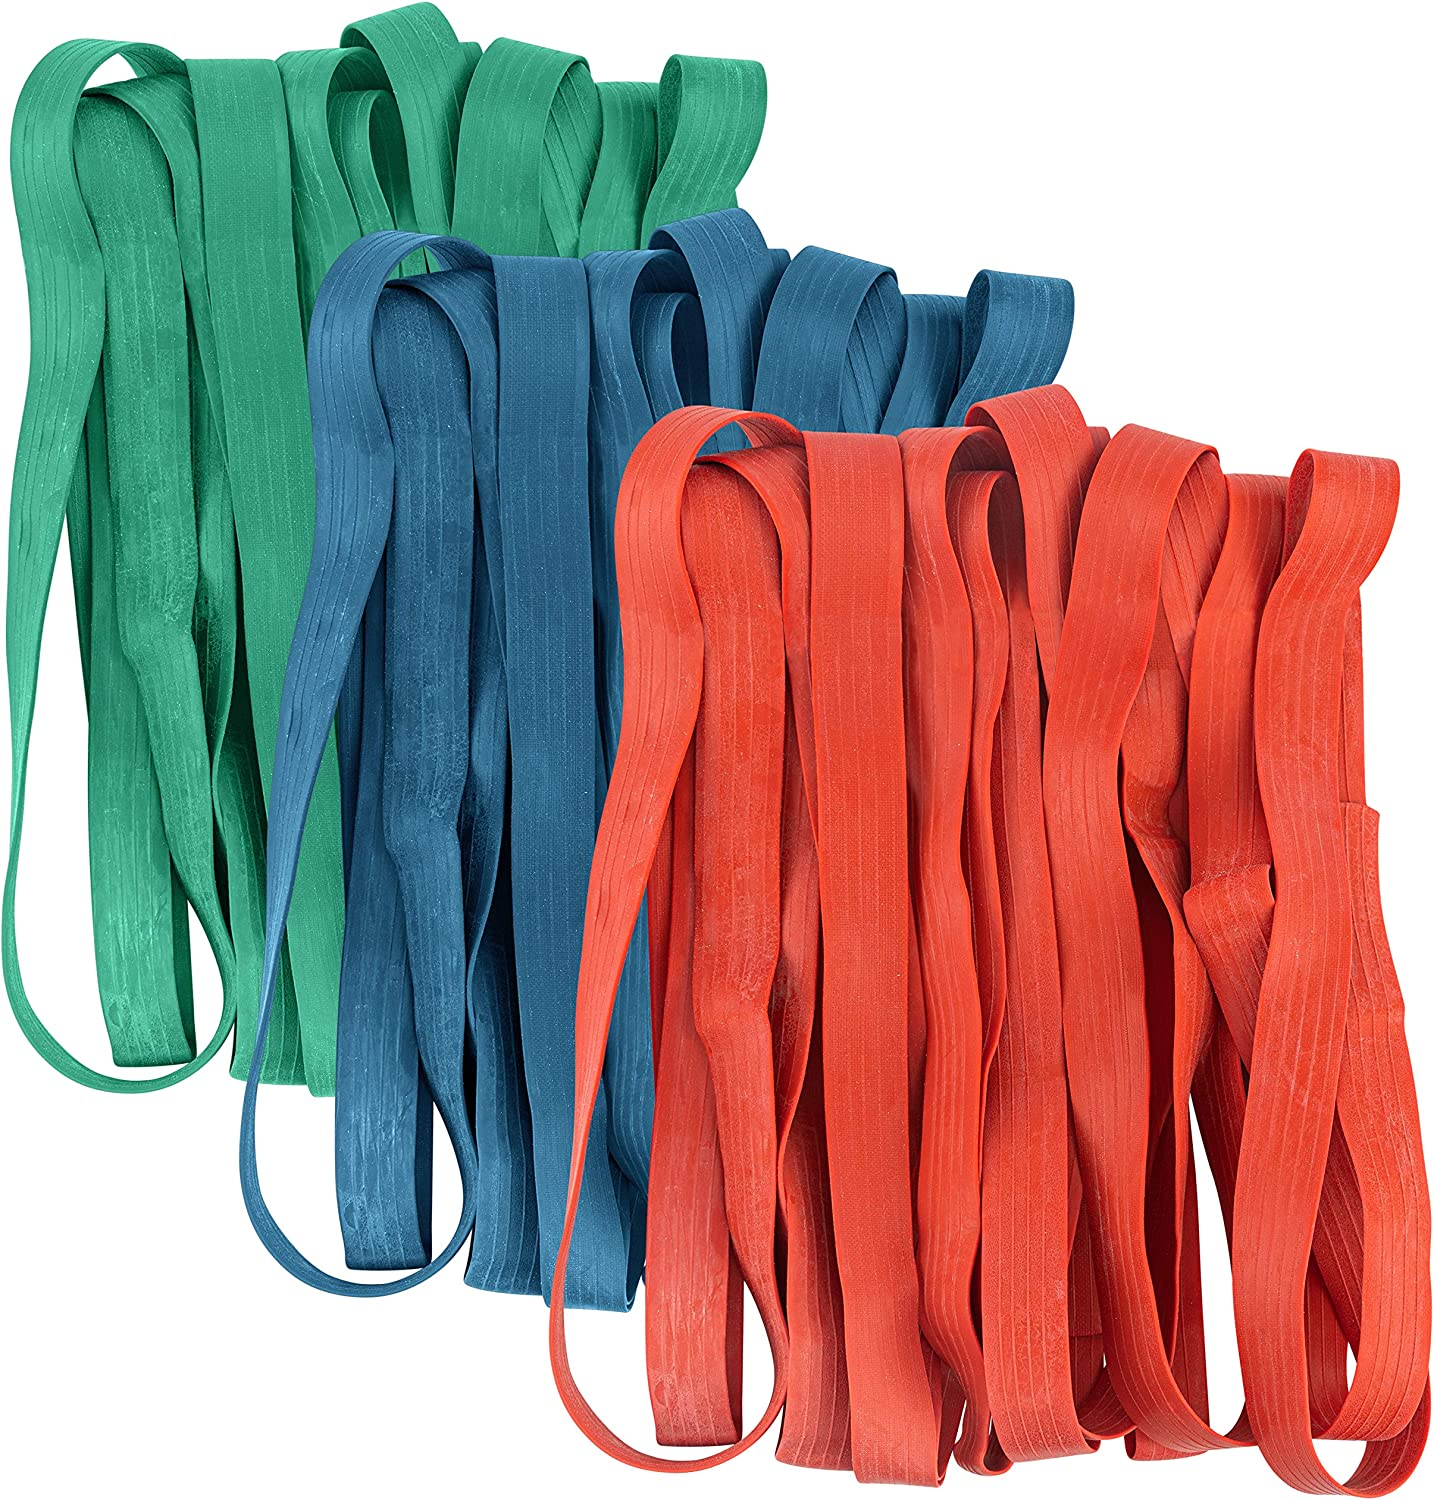 24 Pack Mover Bands - Extra Large Rubber Bands for Moving Blankets and Furniture - Variety of Sizes 26in, 30in & 42in - 24 Moving Bands Total - kitchentoolz